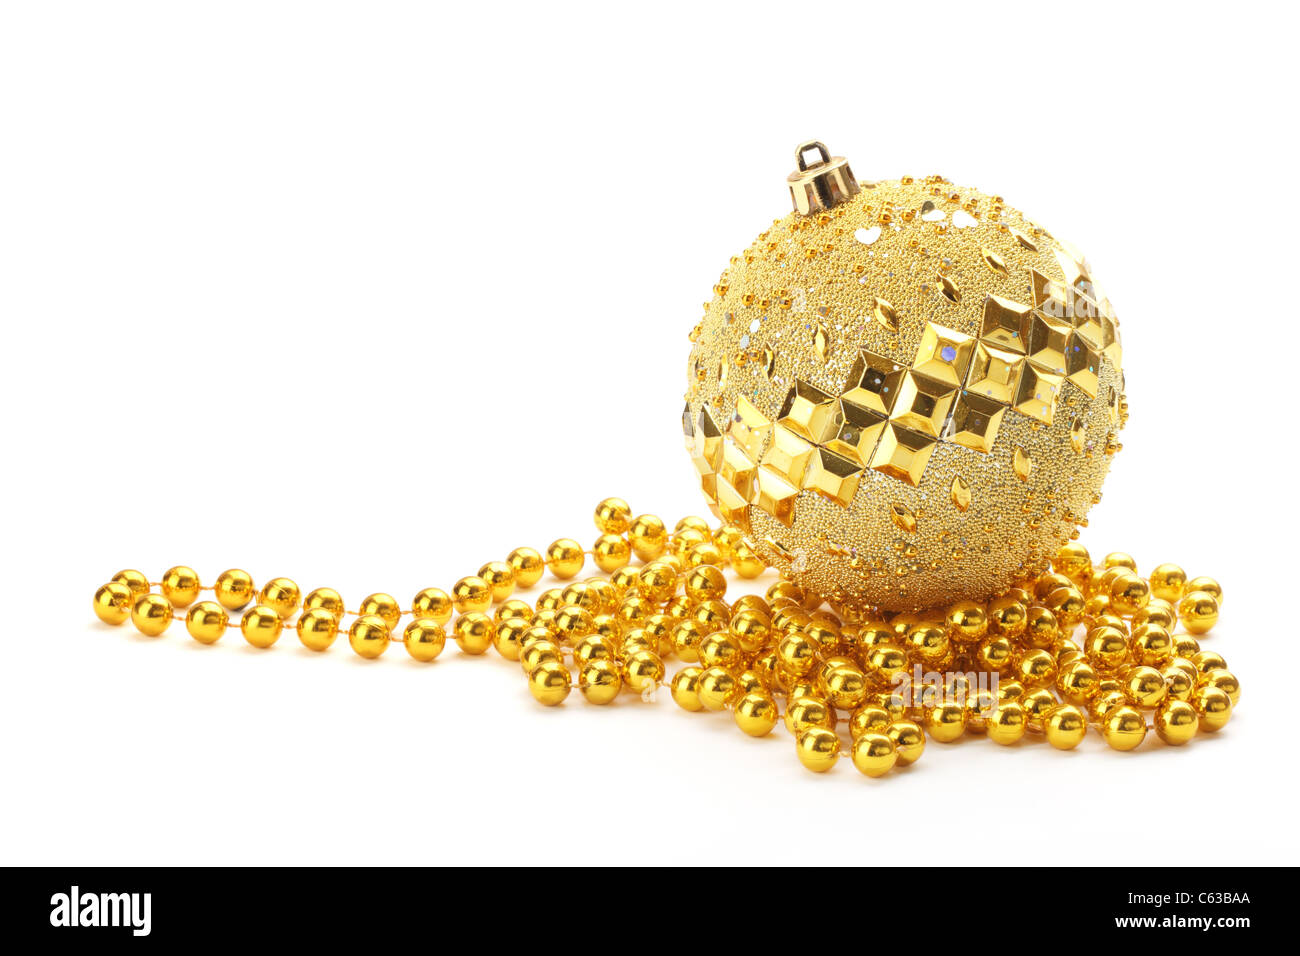 Gold Christmas ball with beads on white background - Stock Image